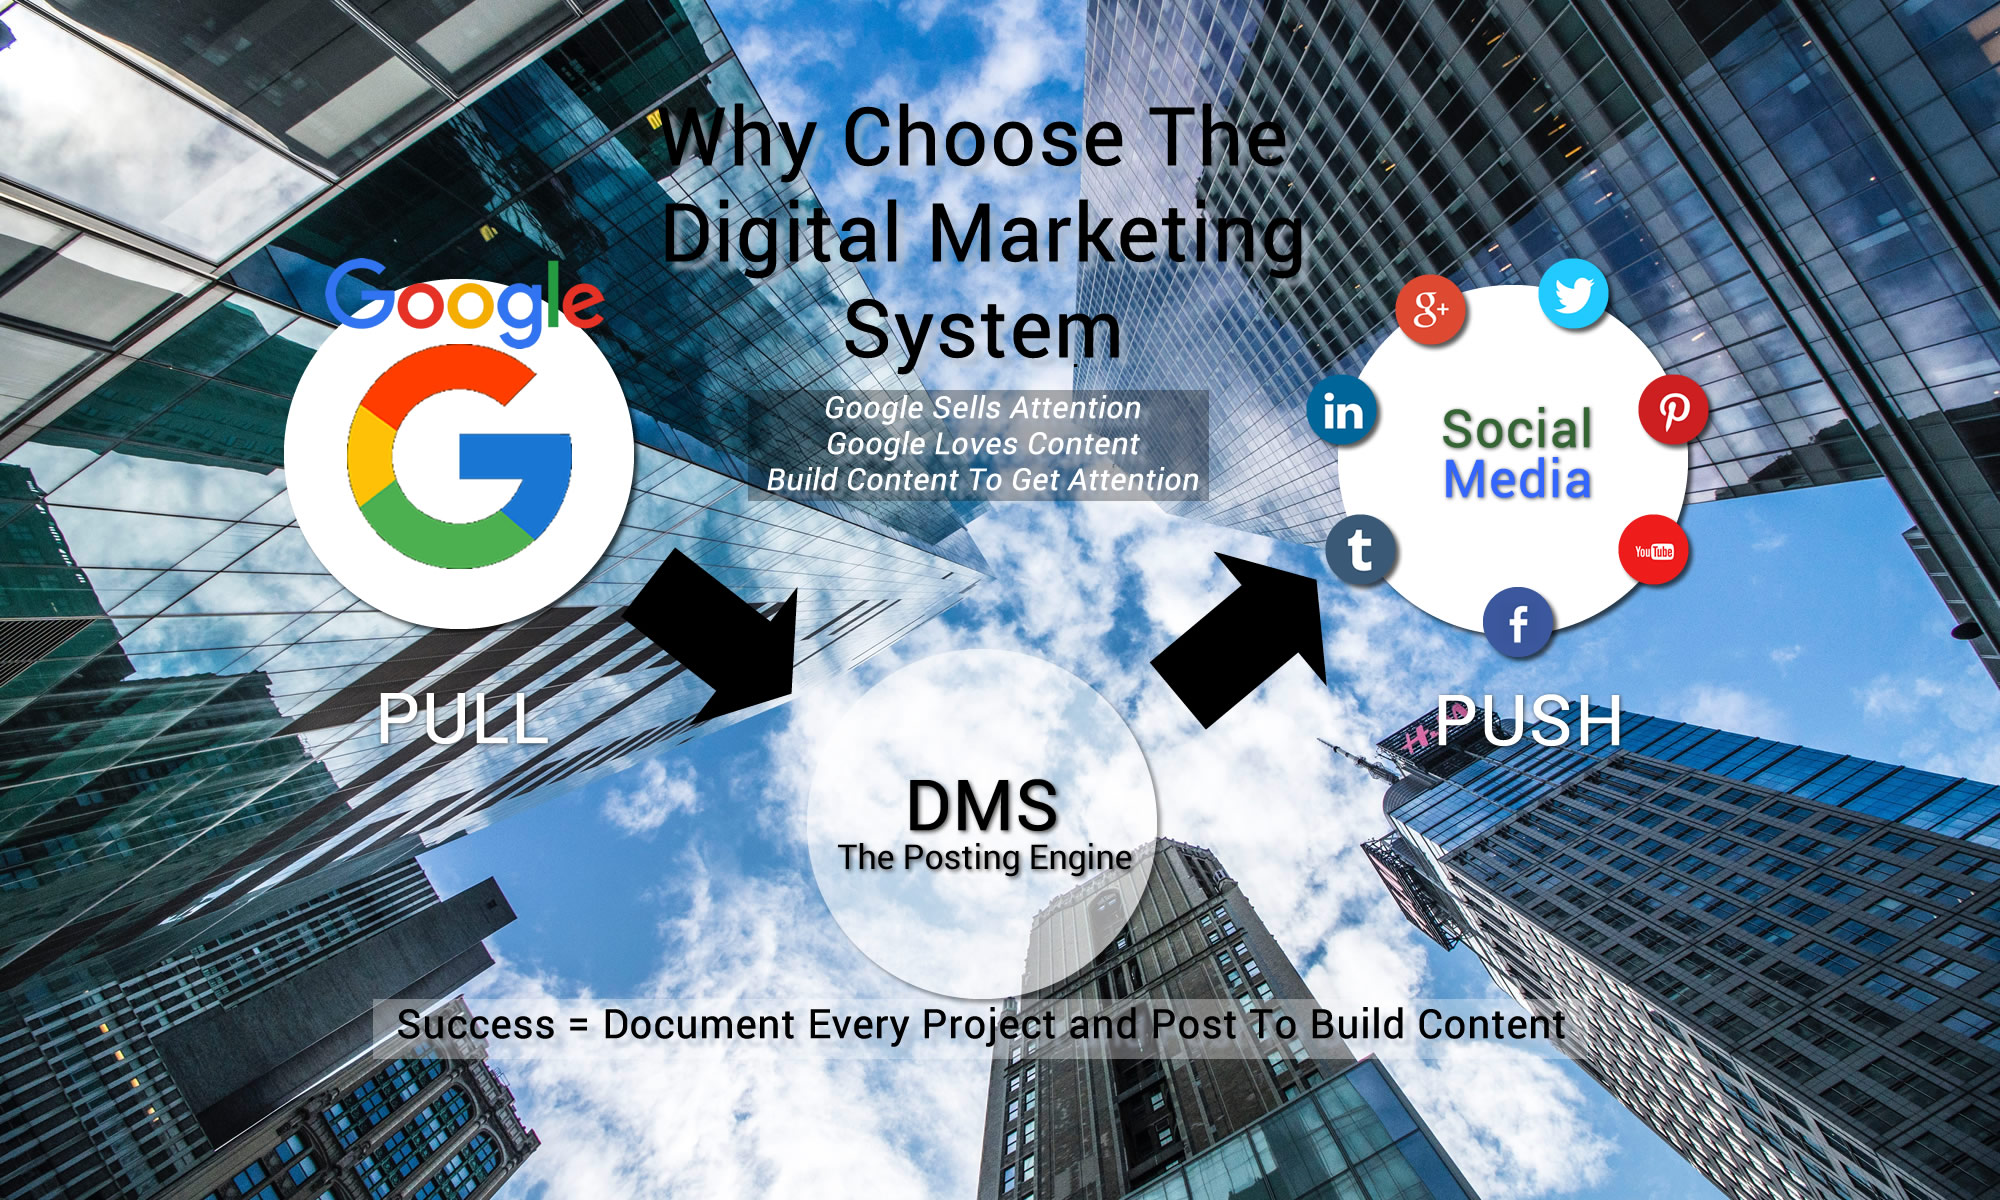 Why Choose The Digital Marketing System